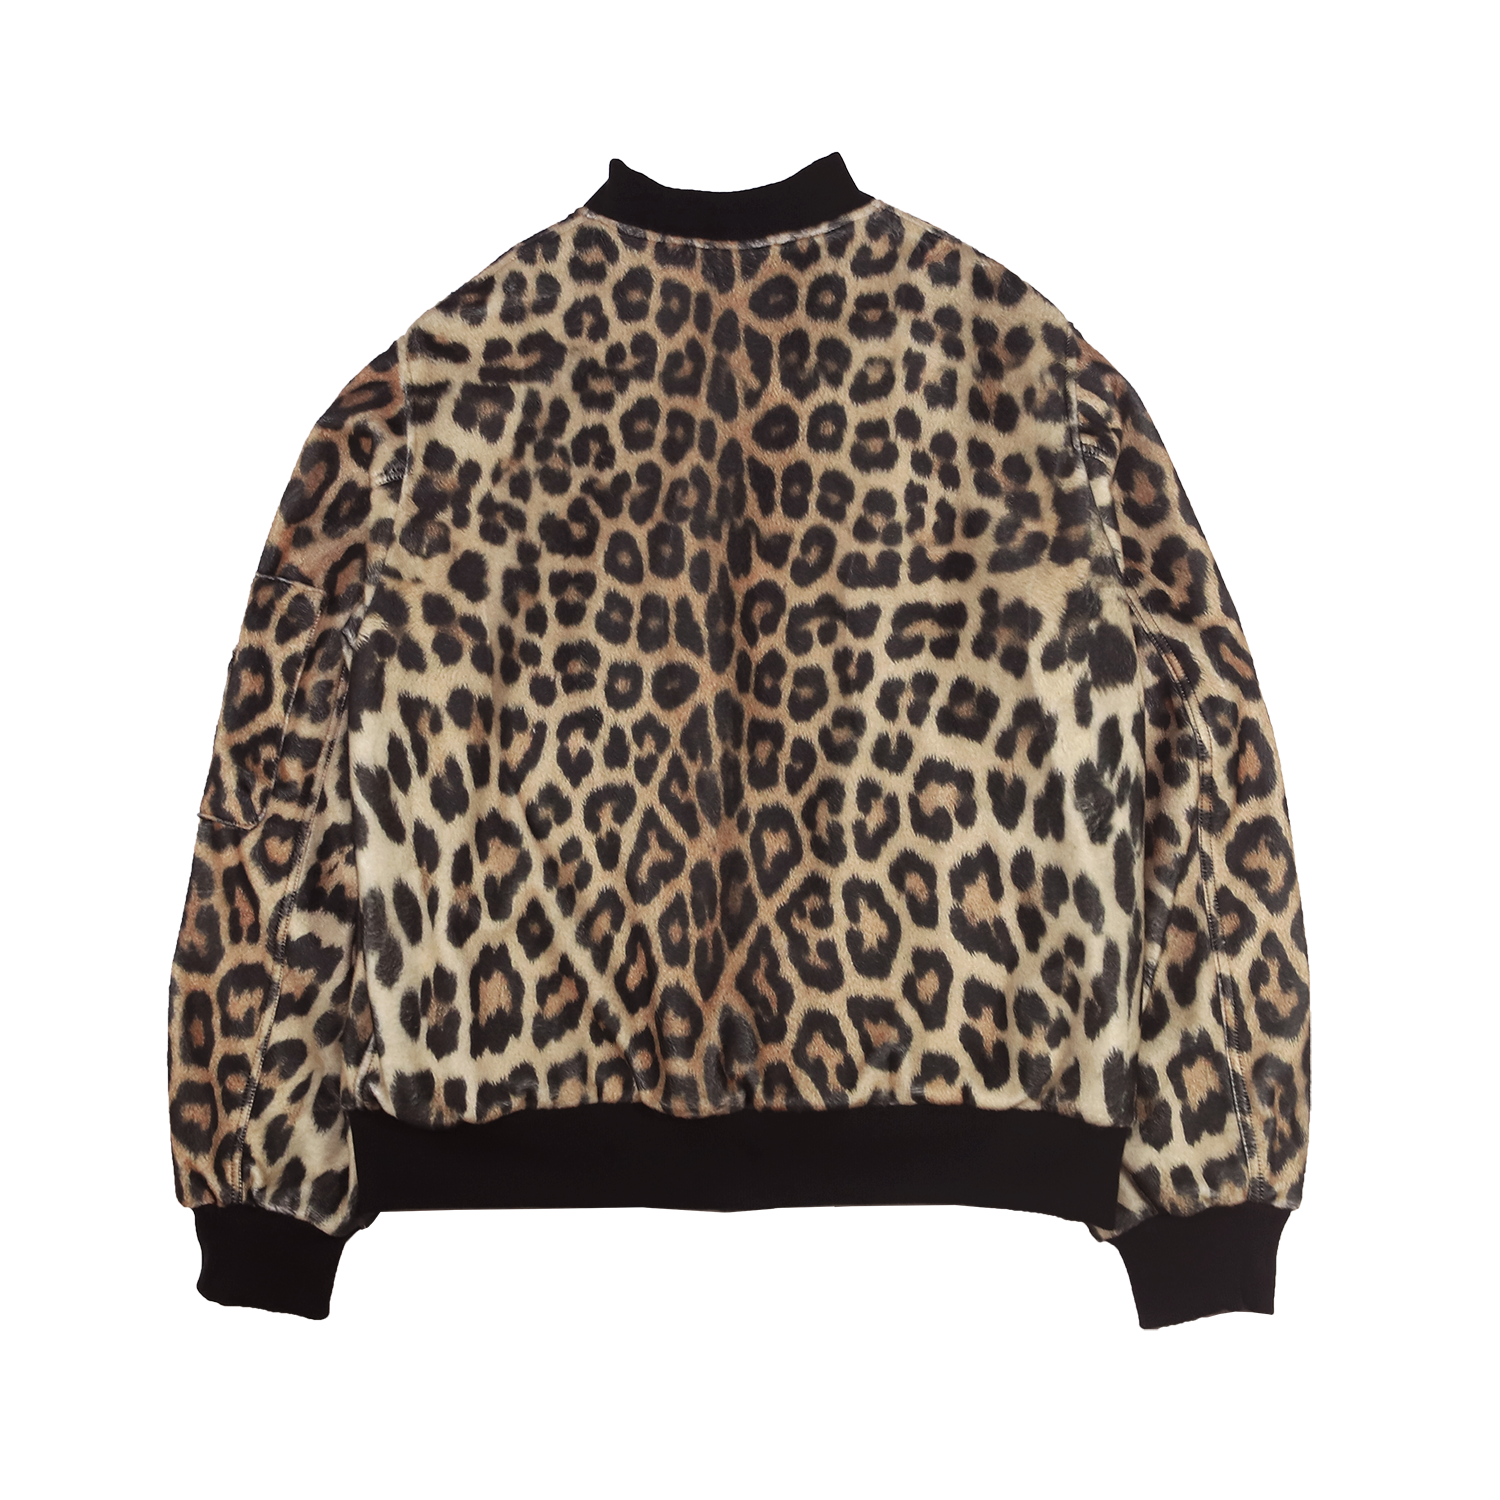 products/leopardbomber_back.png